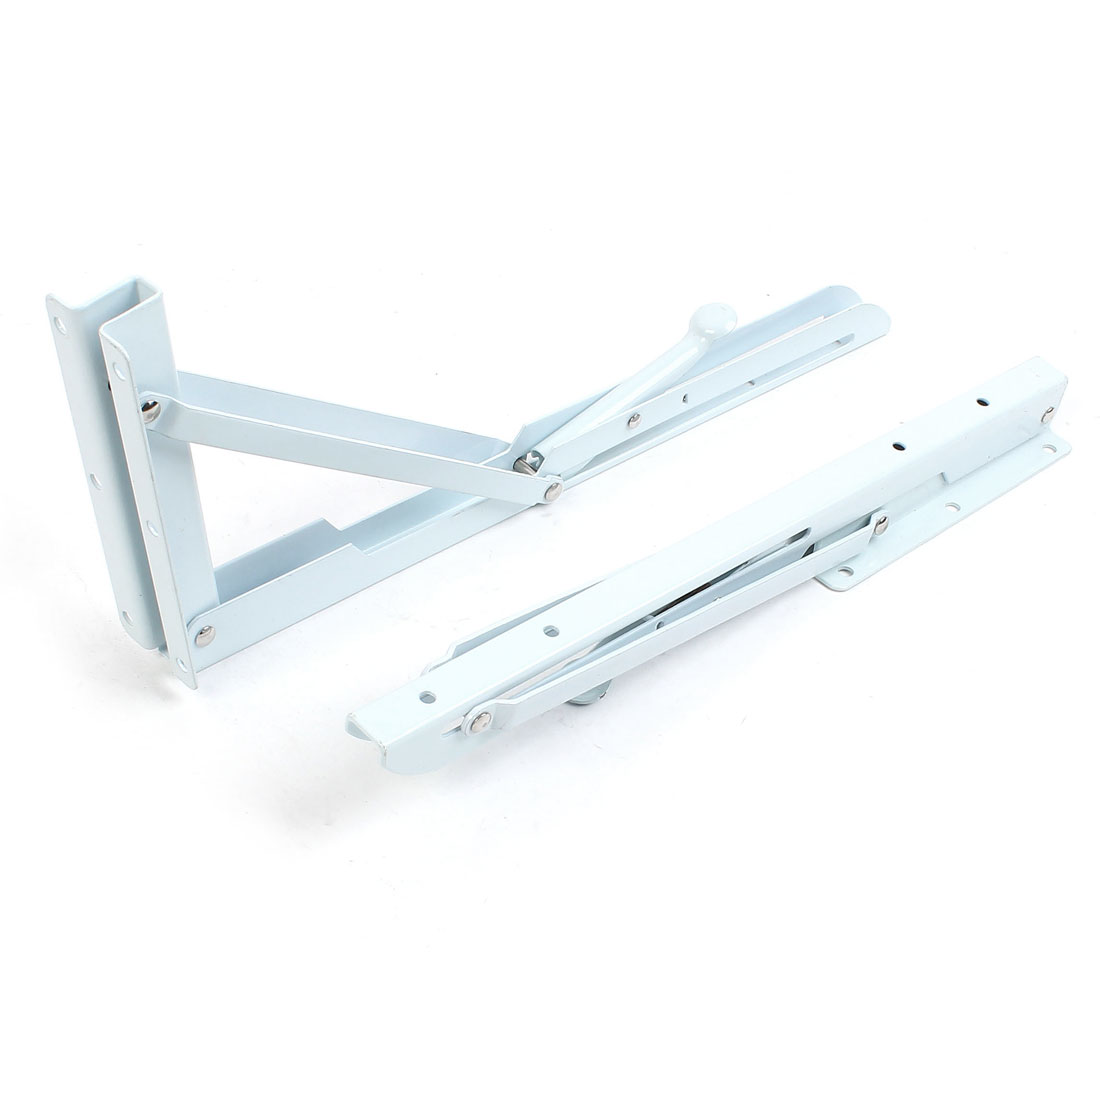 2 Pcs 90 Degree Books Projector Folding Support Shelf Bracket 350mm Long